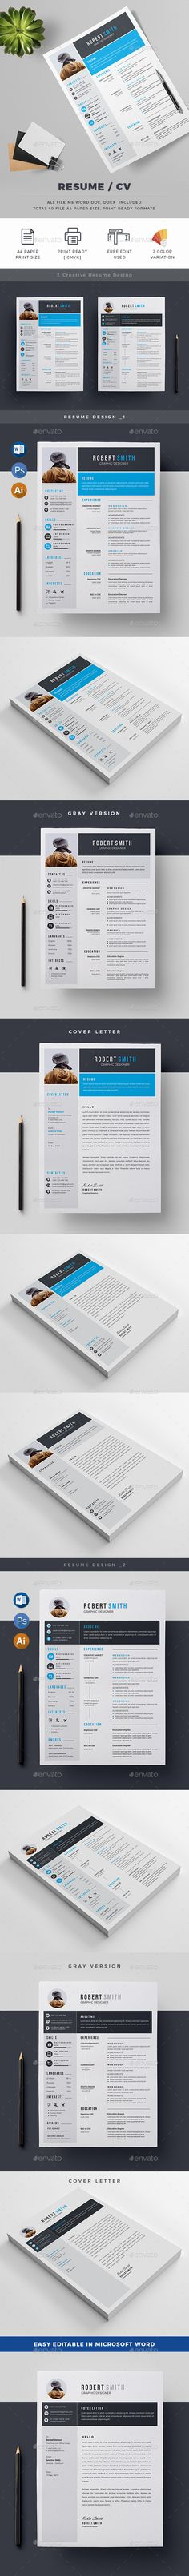 Resume\/CV Resume cv and Cv template - resume paper size